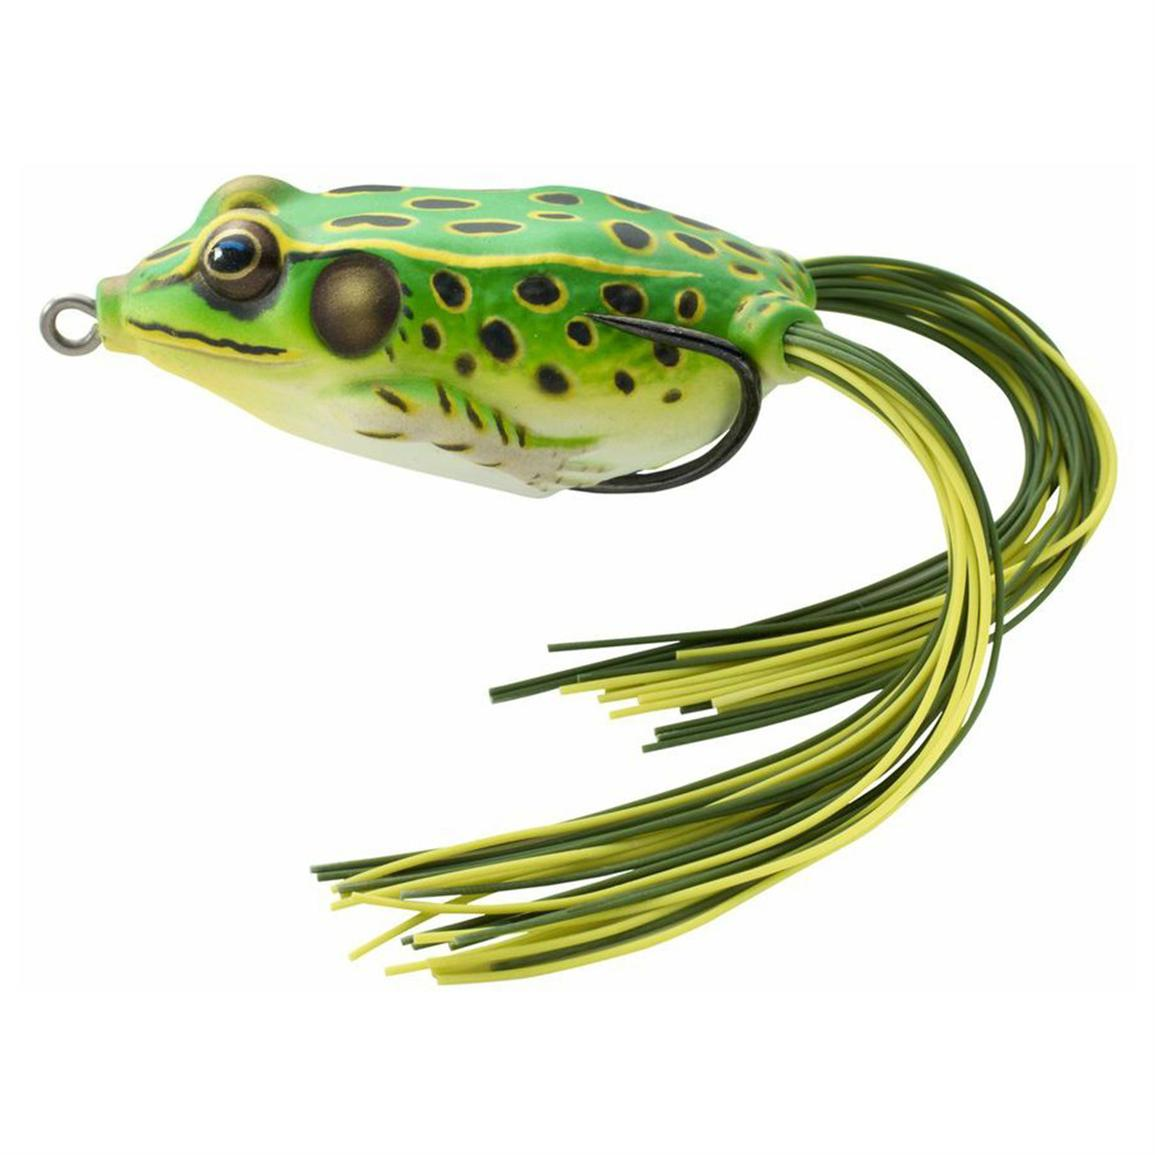 "Live Target® 2 5/8"" Frog Hollow Body Surface Lure - 213392 ..."